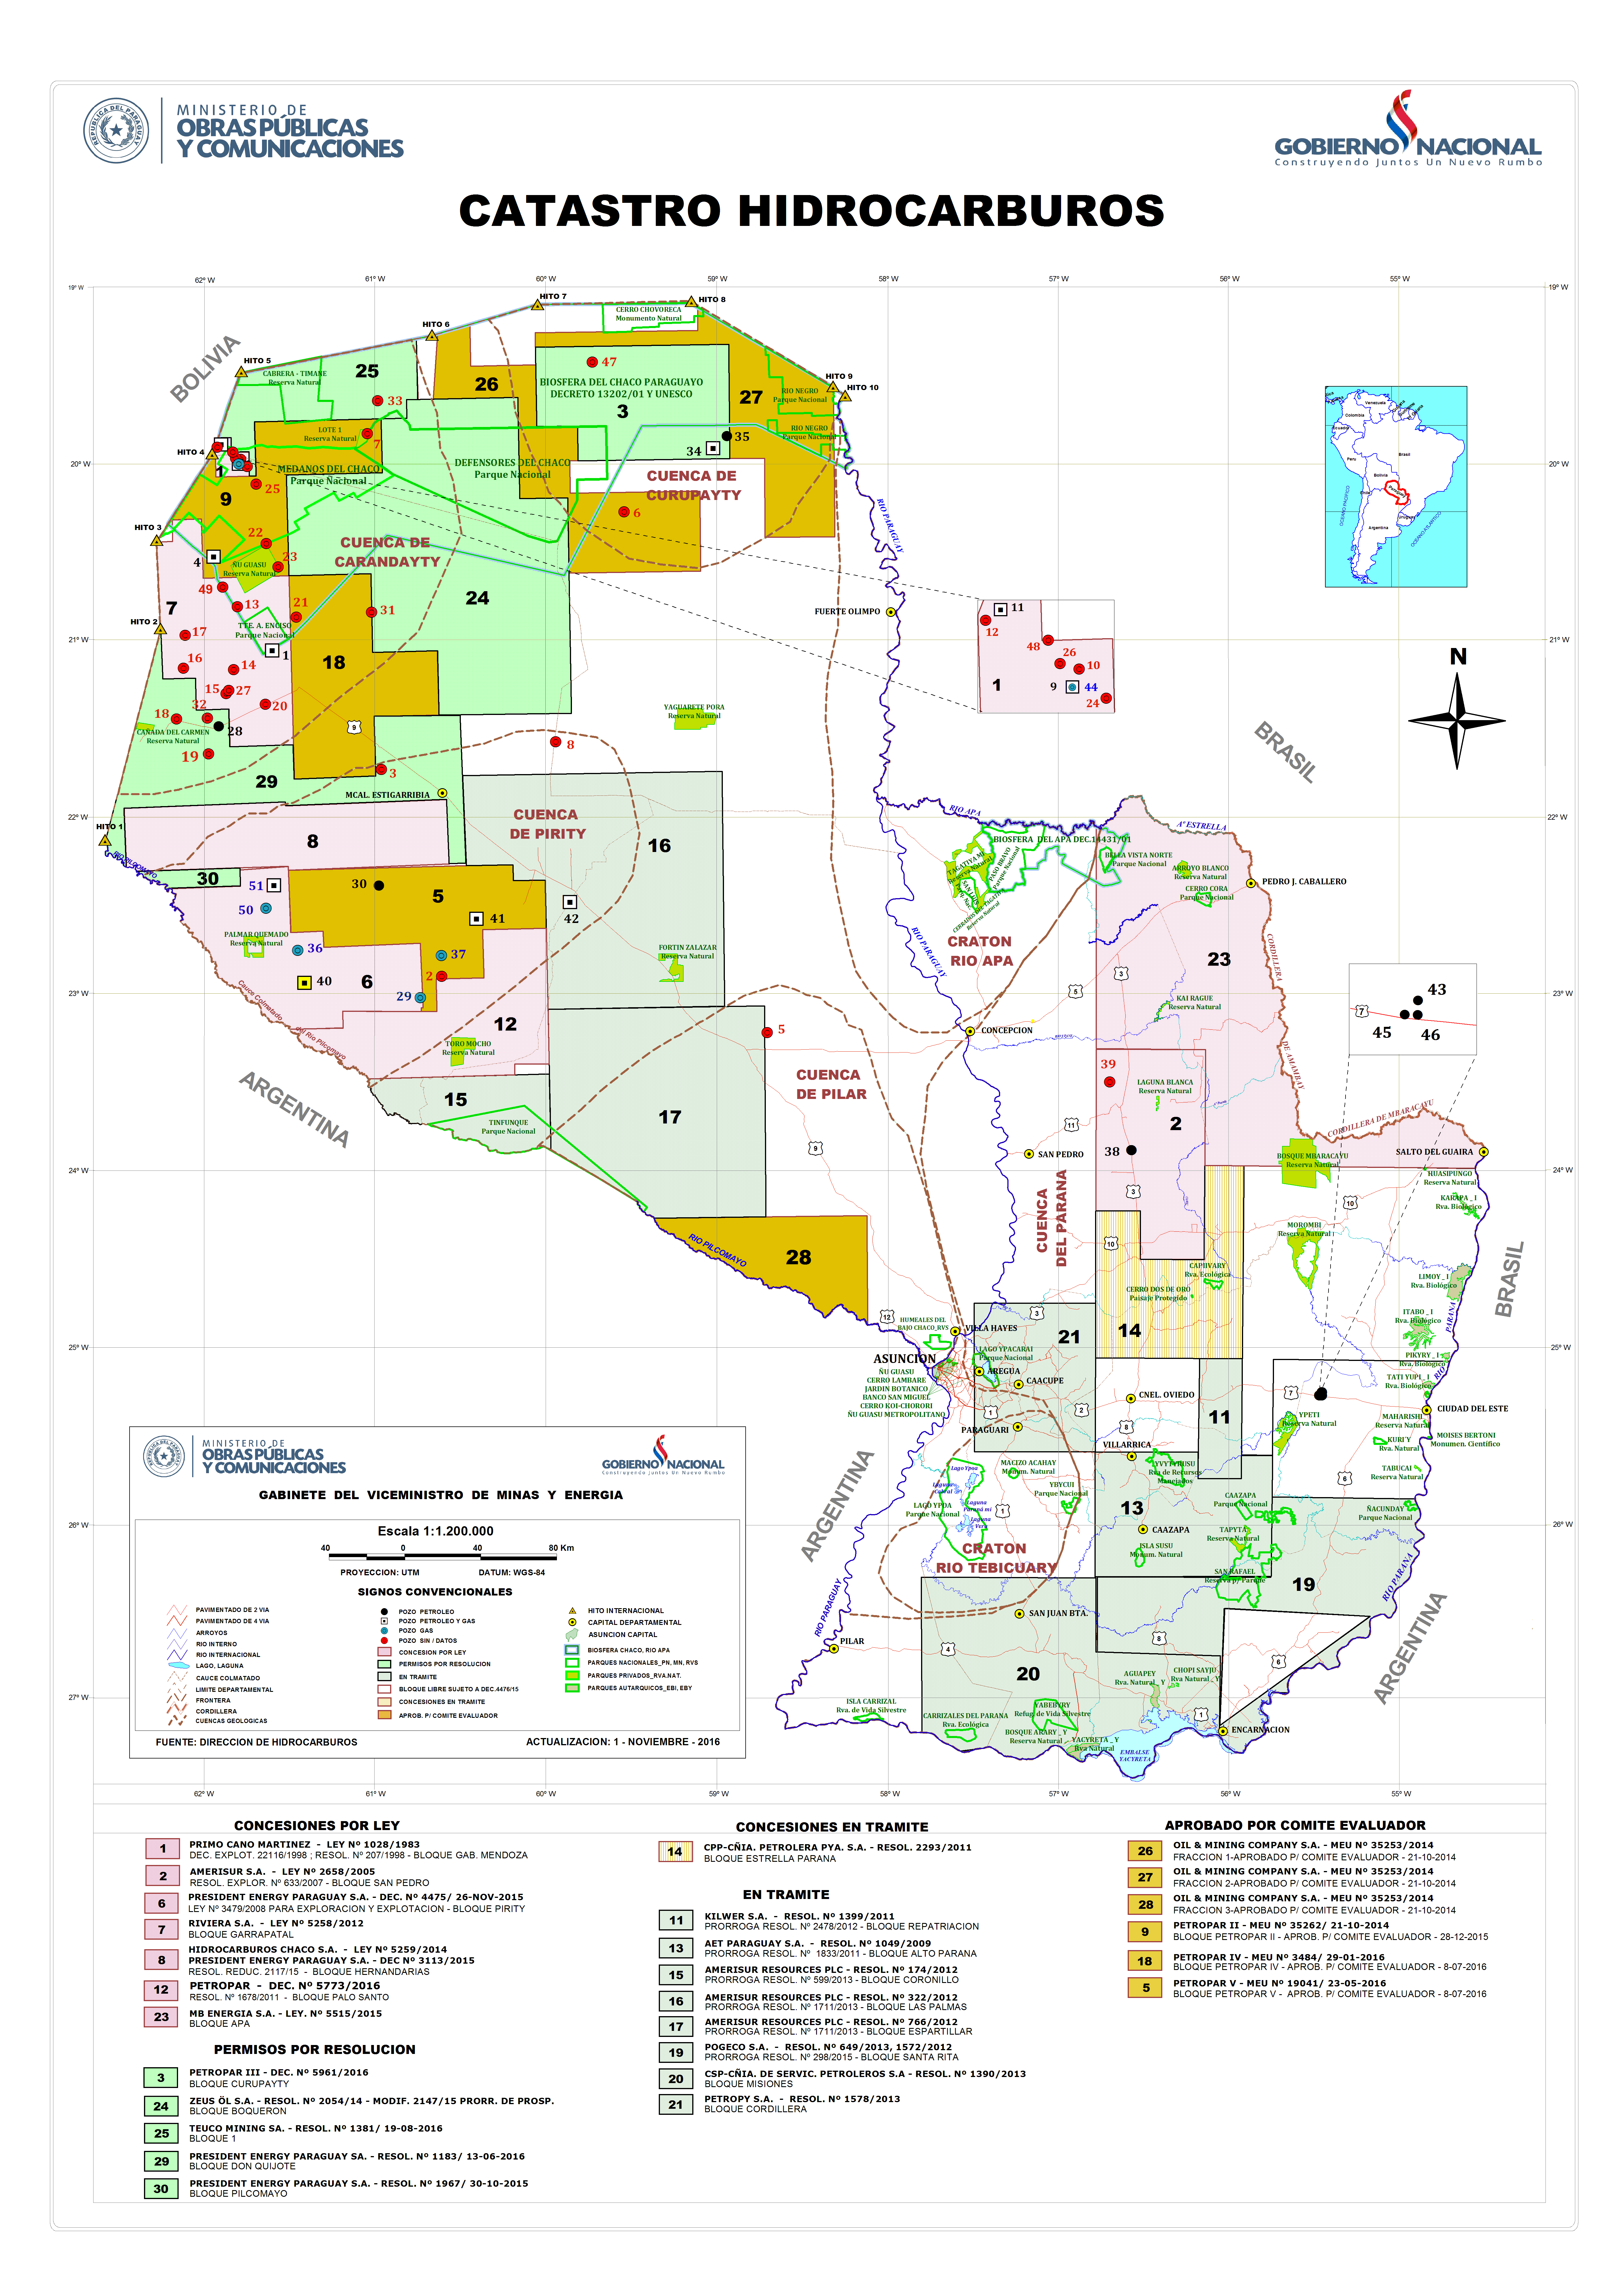 Compilation Of Geospatial Data For The Mineral Industries And - Honduras mineral map non metallic